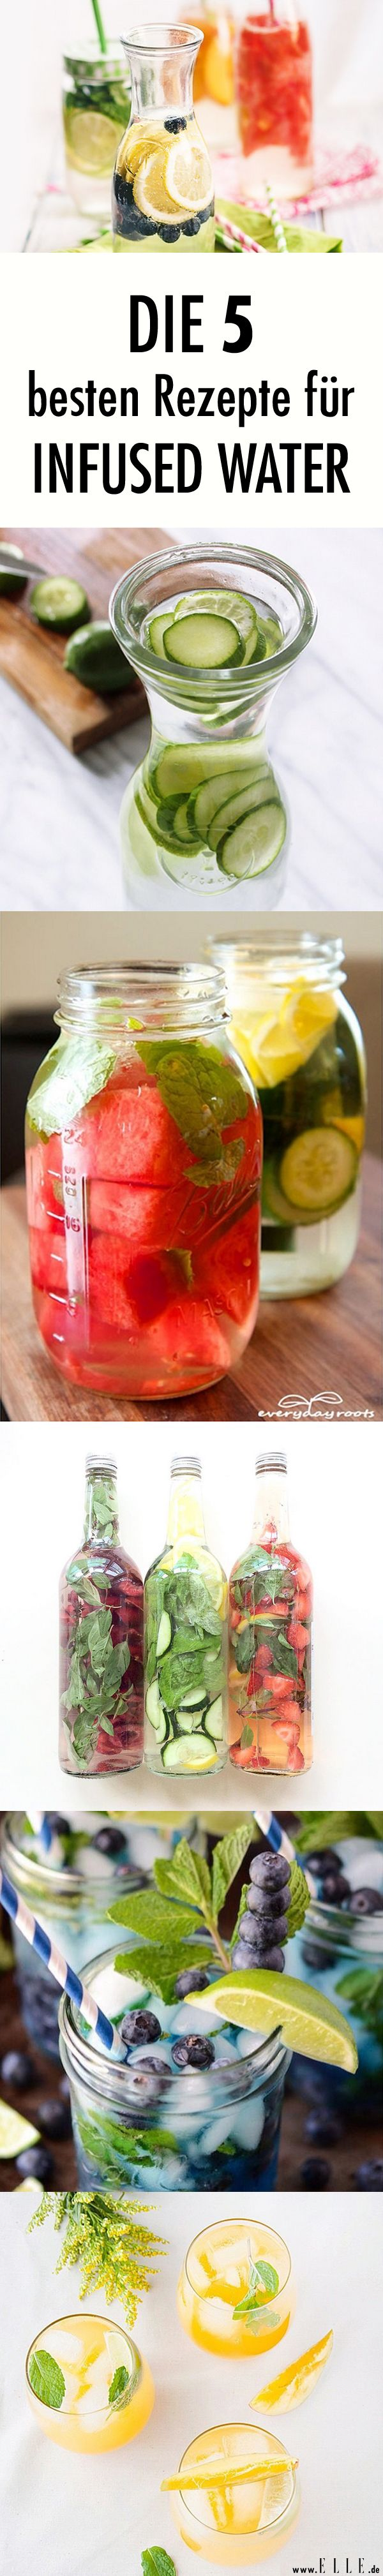 100 infused water recipes on pinterest flavored water recipes infused water detox and water. Black Bedroom Furniture Sets. Home Design Ideas